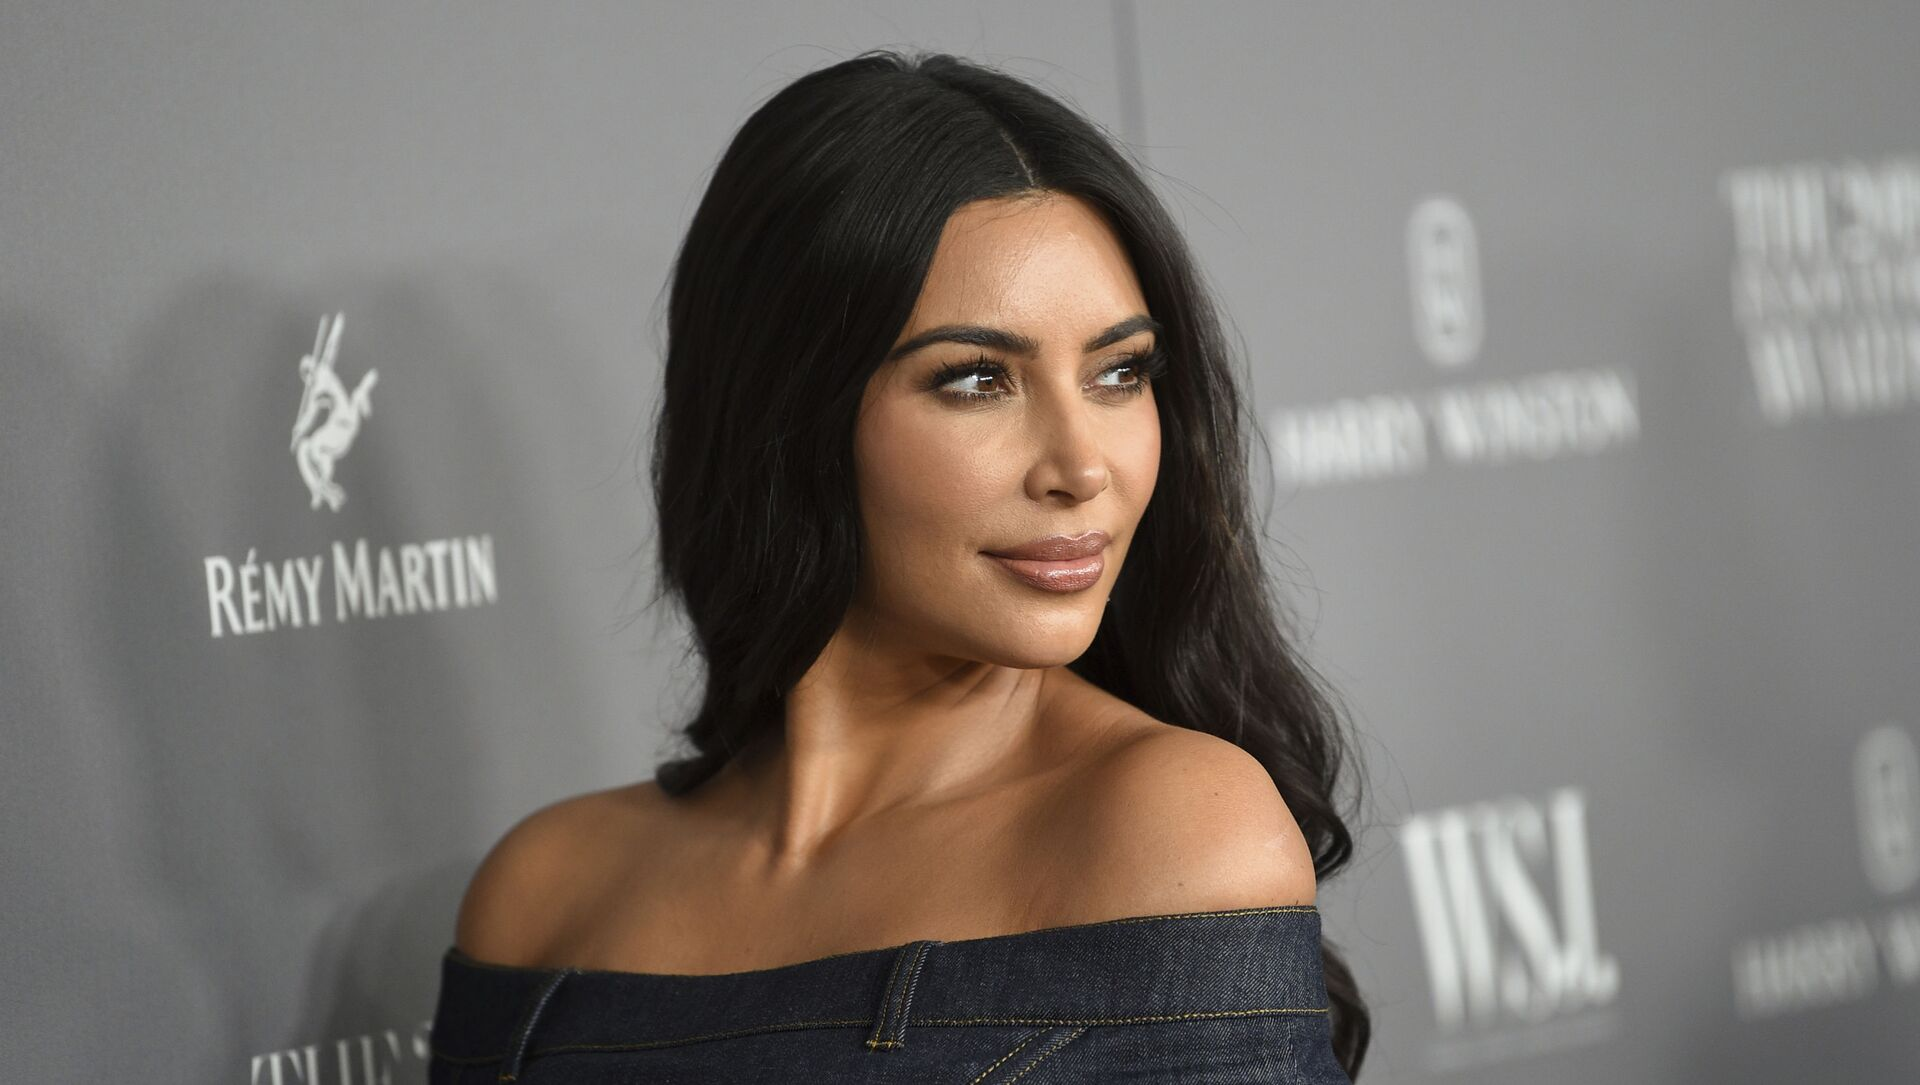 Television personality Kim Kardashian West attends the WSJ. Magazine 2019 Innovator Awards at the Museum of Modern Art on Wednesday, Nov. 6, 2019, in New York. - Sputnik Italia, 1920, 30.04.2021